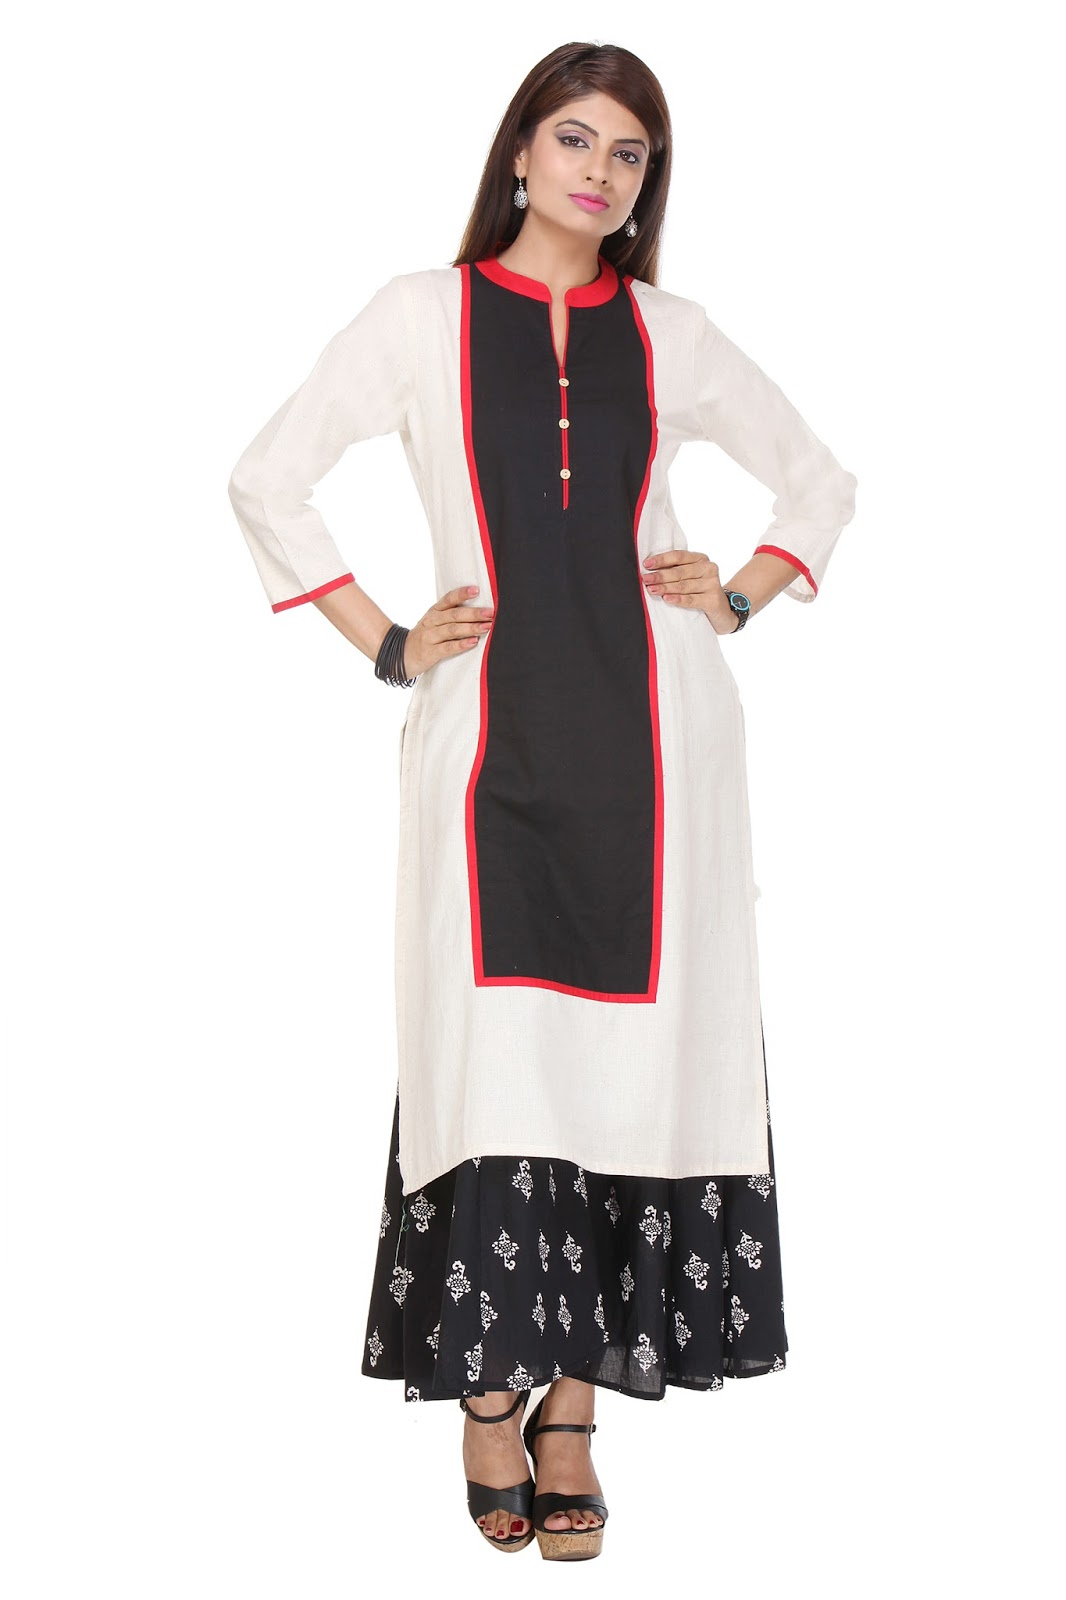 Rayon 13 – Latest New Colleection Rayon Kurti